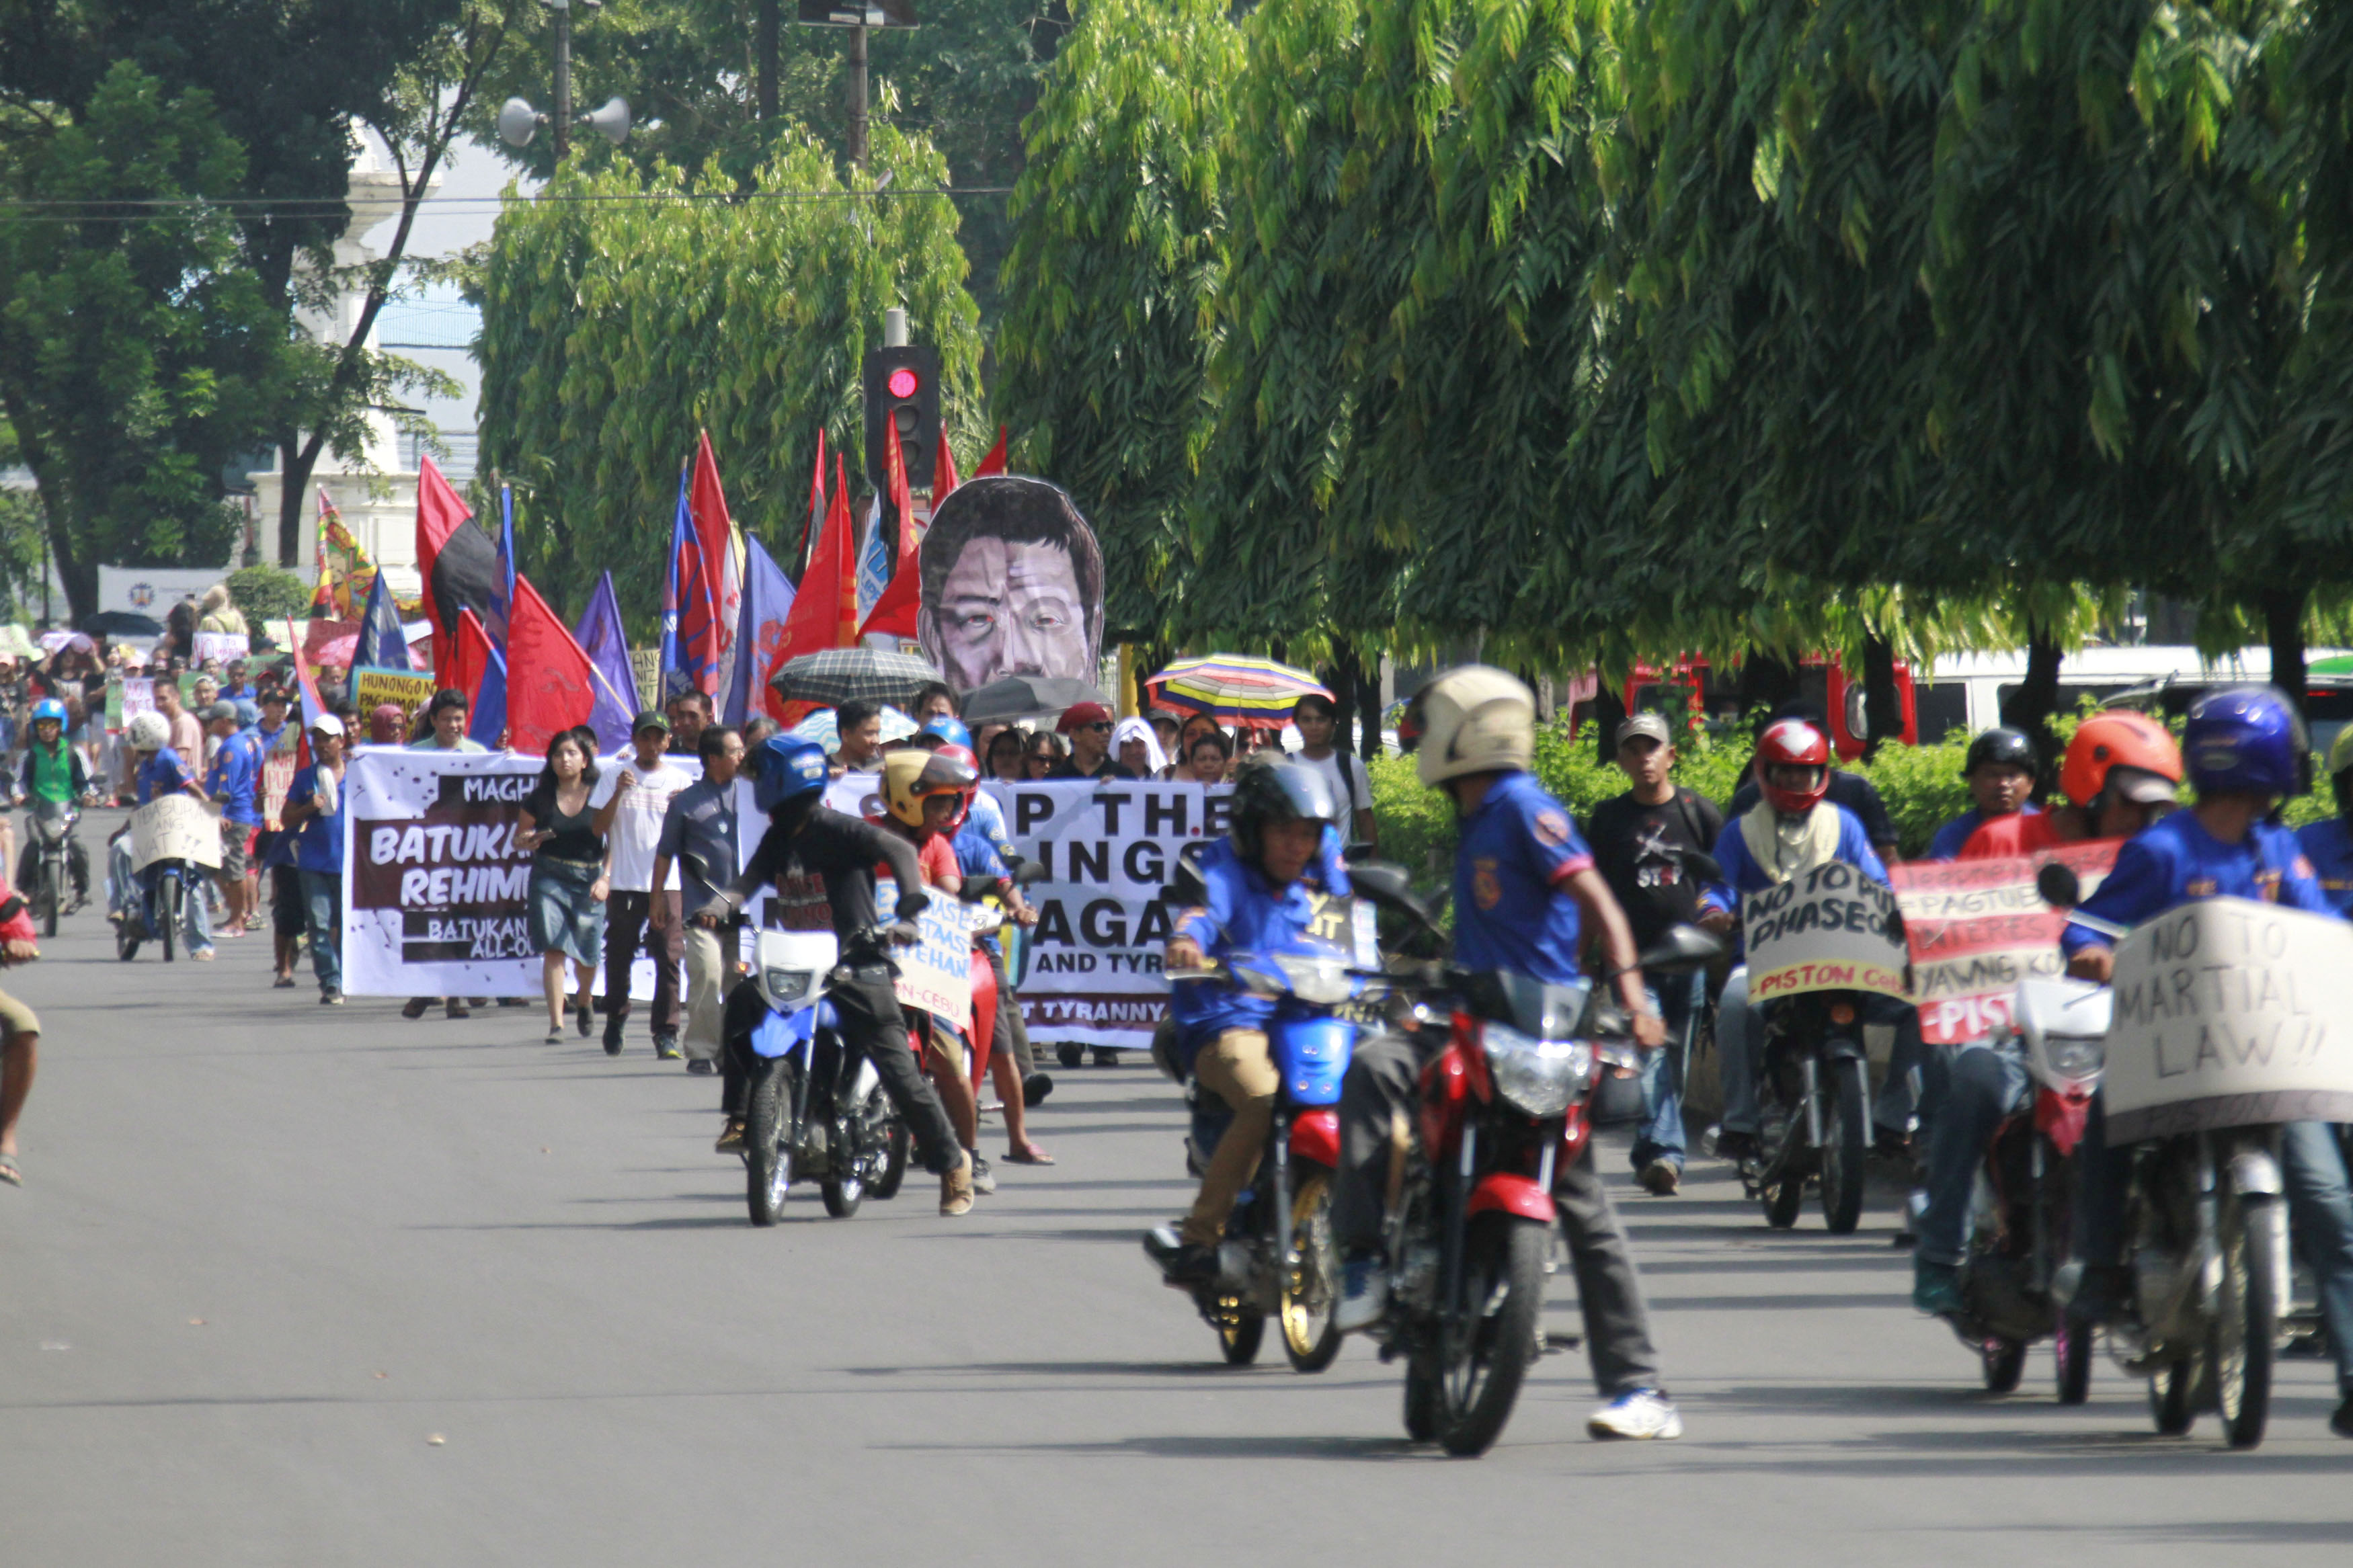 CEBU PROTEST. Various groups join the national day of protest in Cebu. Photo by Gelo Litonjua/Rappler